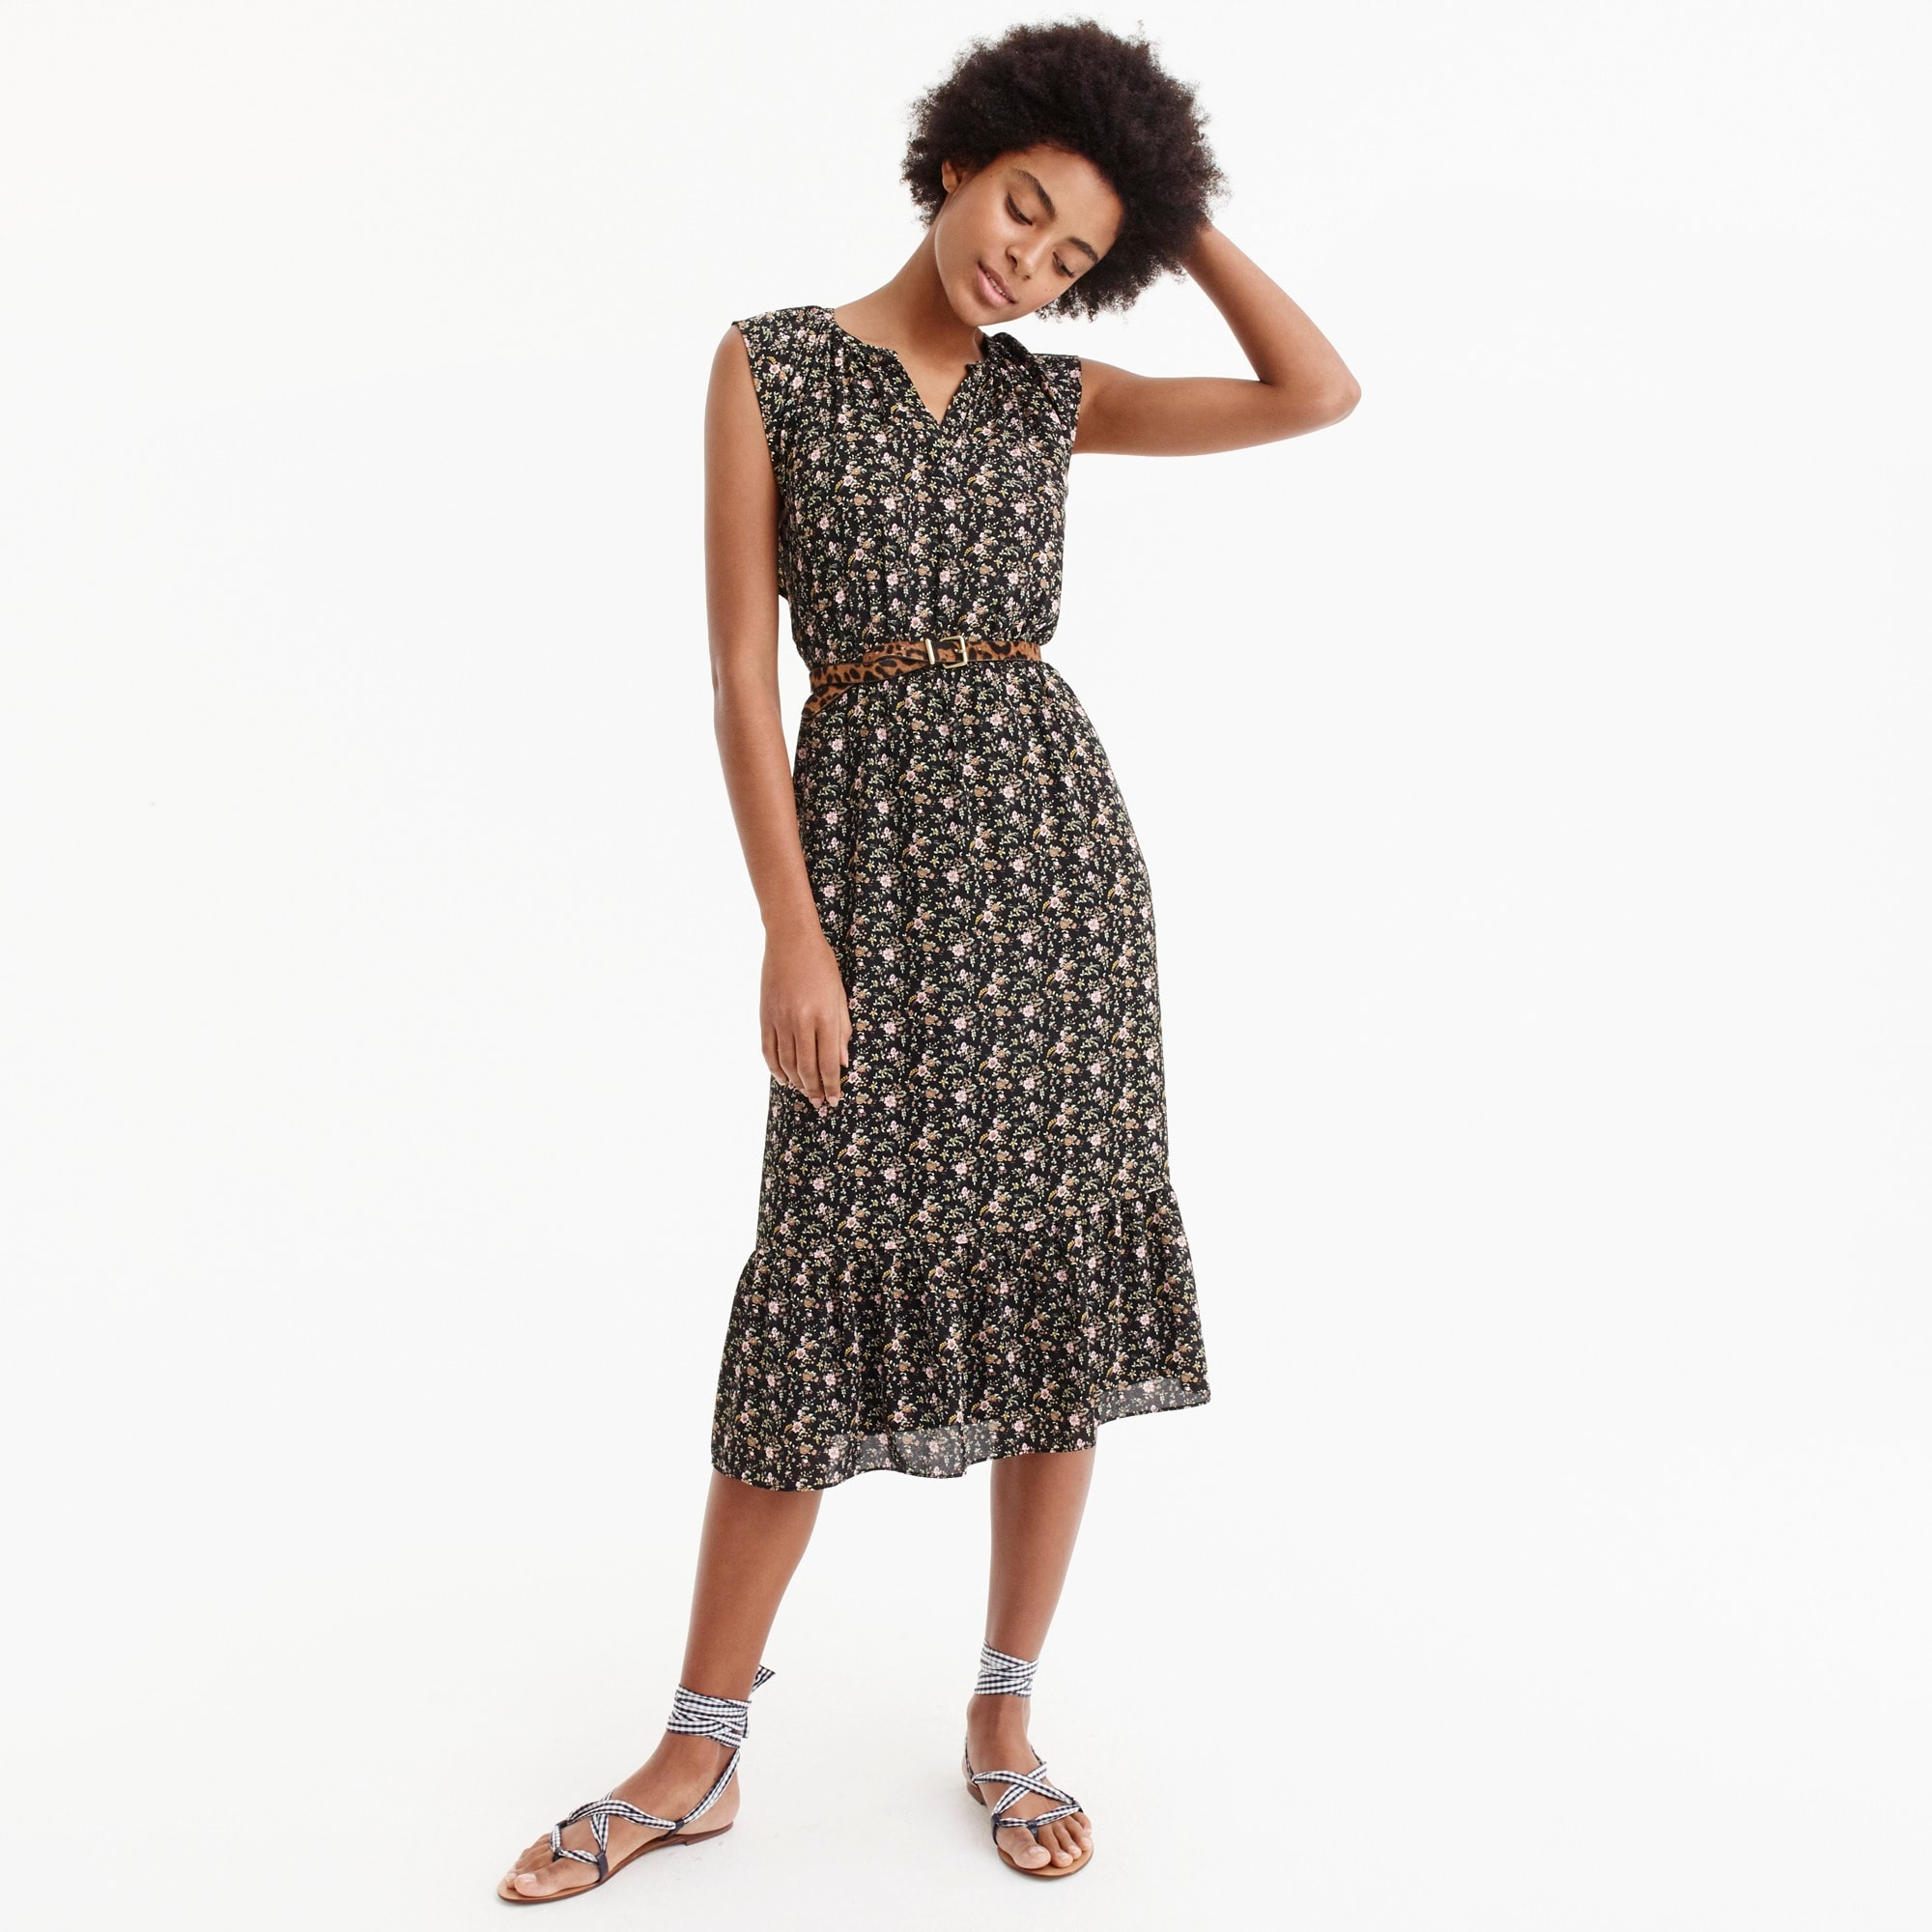 womens J.Crew Mercantile cap-sleeve midi dress in superbloom